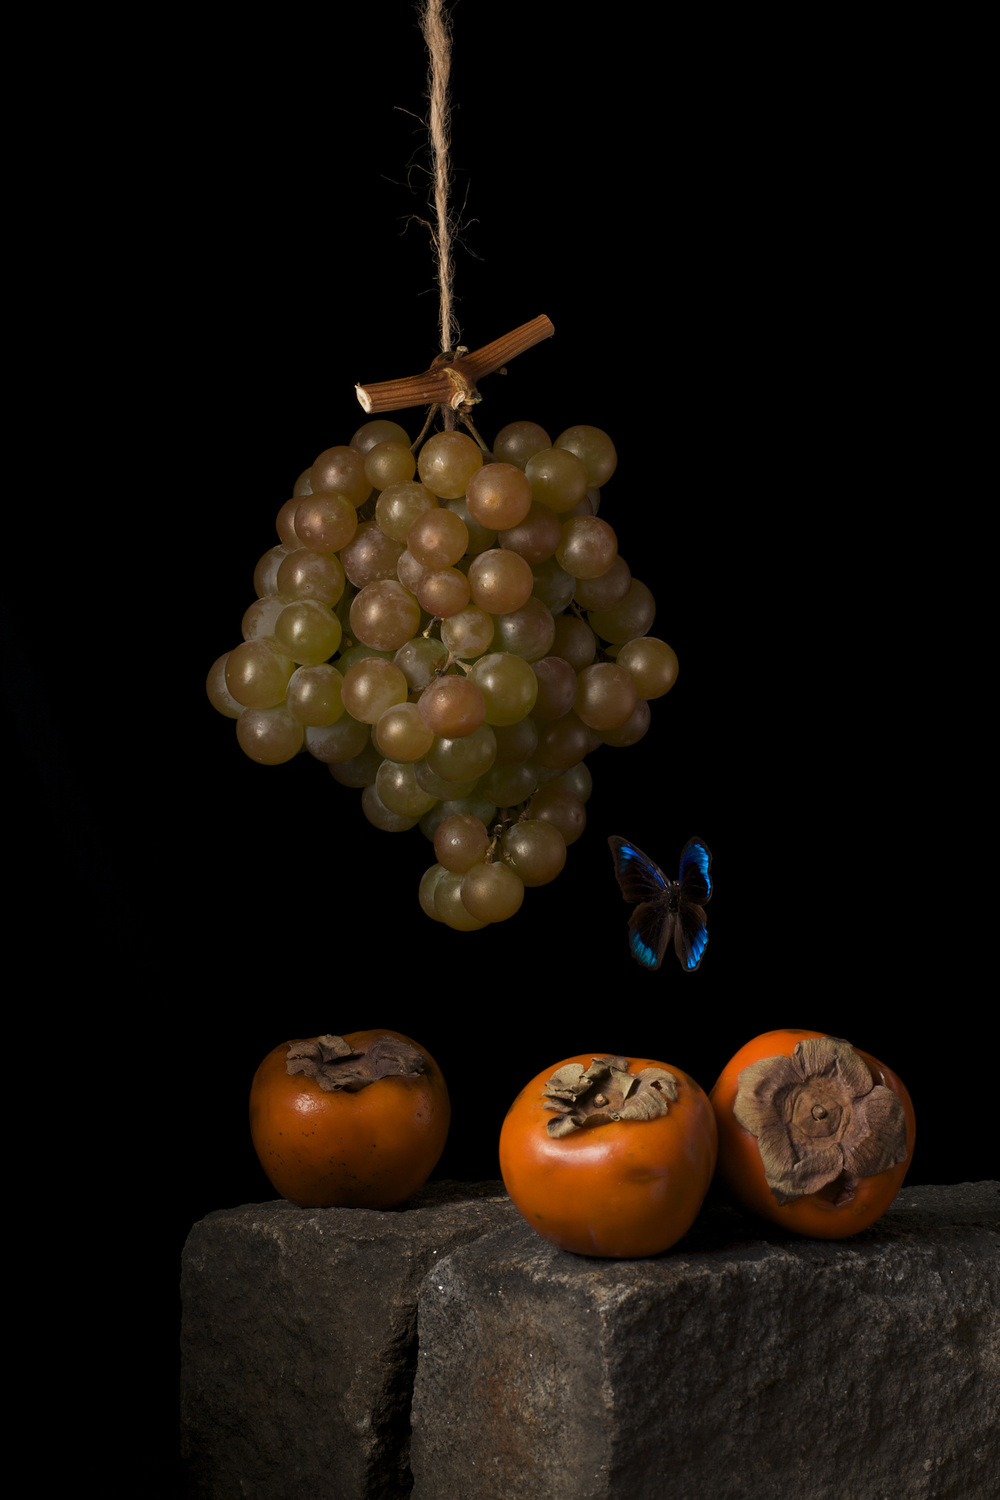 Persimmons, After A.C., 2008